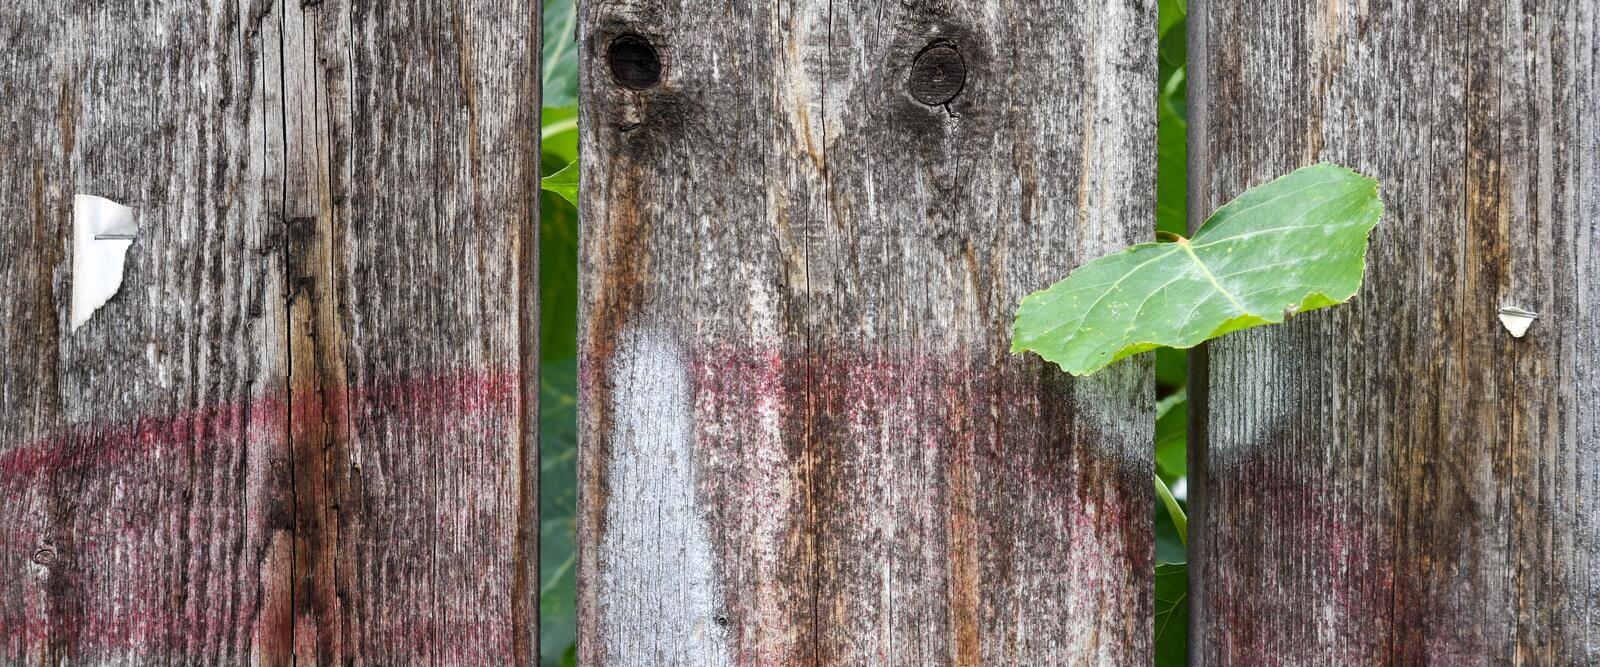 Weathered wooden texture for interior or exterior design solutions. Weathered wooden wall texture for industrial interior or exterior design solutions stock photos